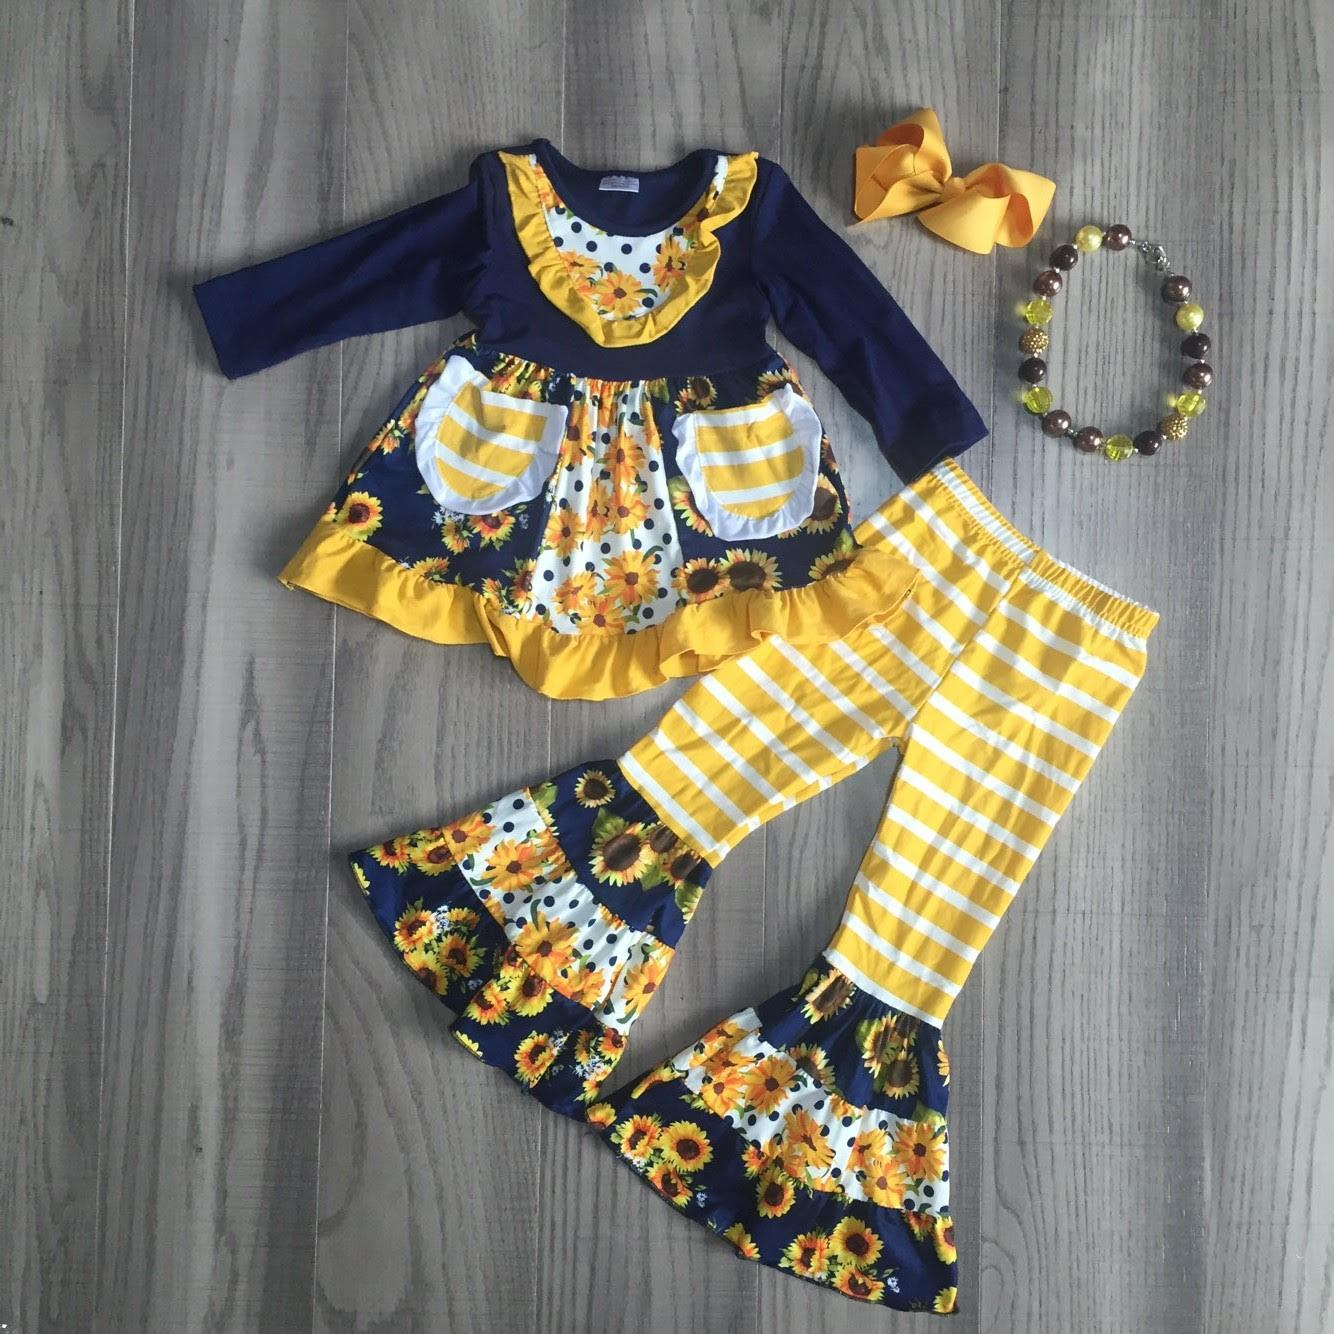 Navy and Gold Sunflower Bell Bottom Outfit - [PREORDER] Fall Preorder